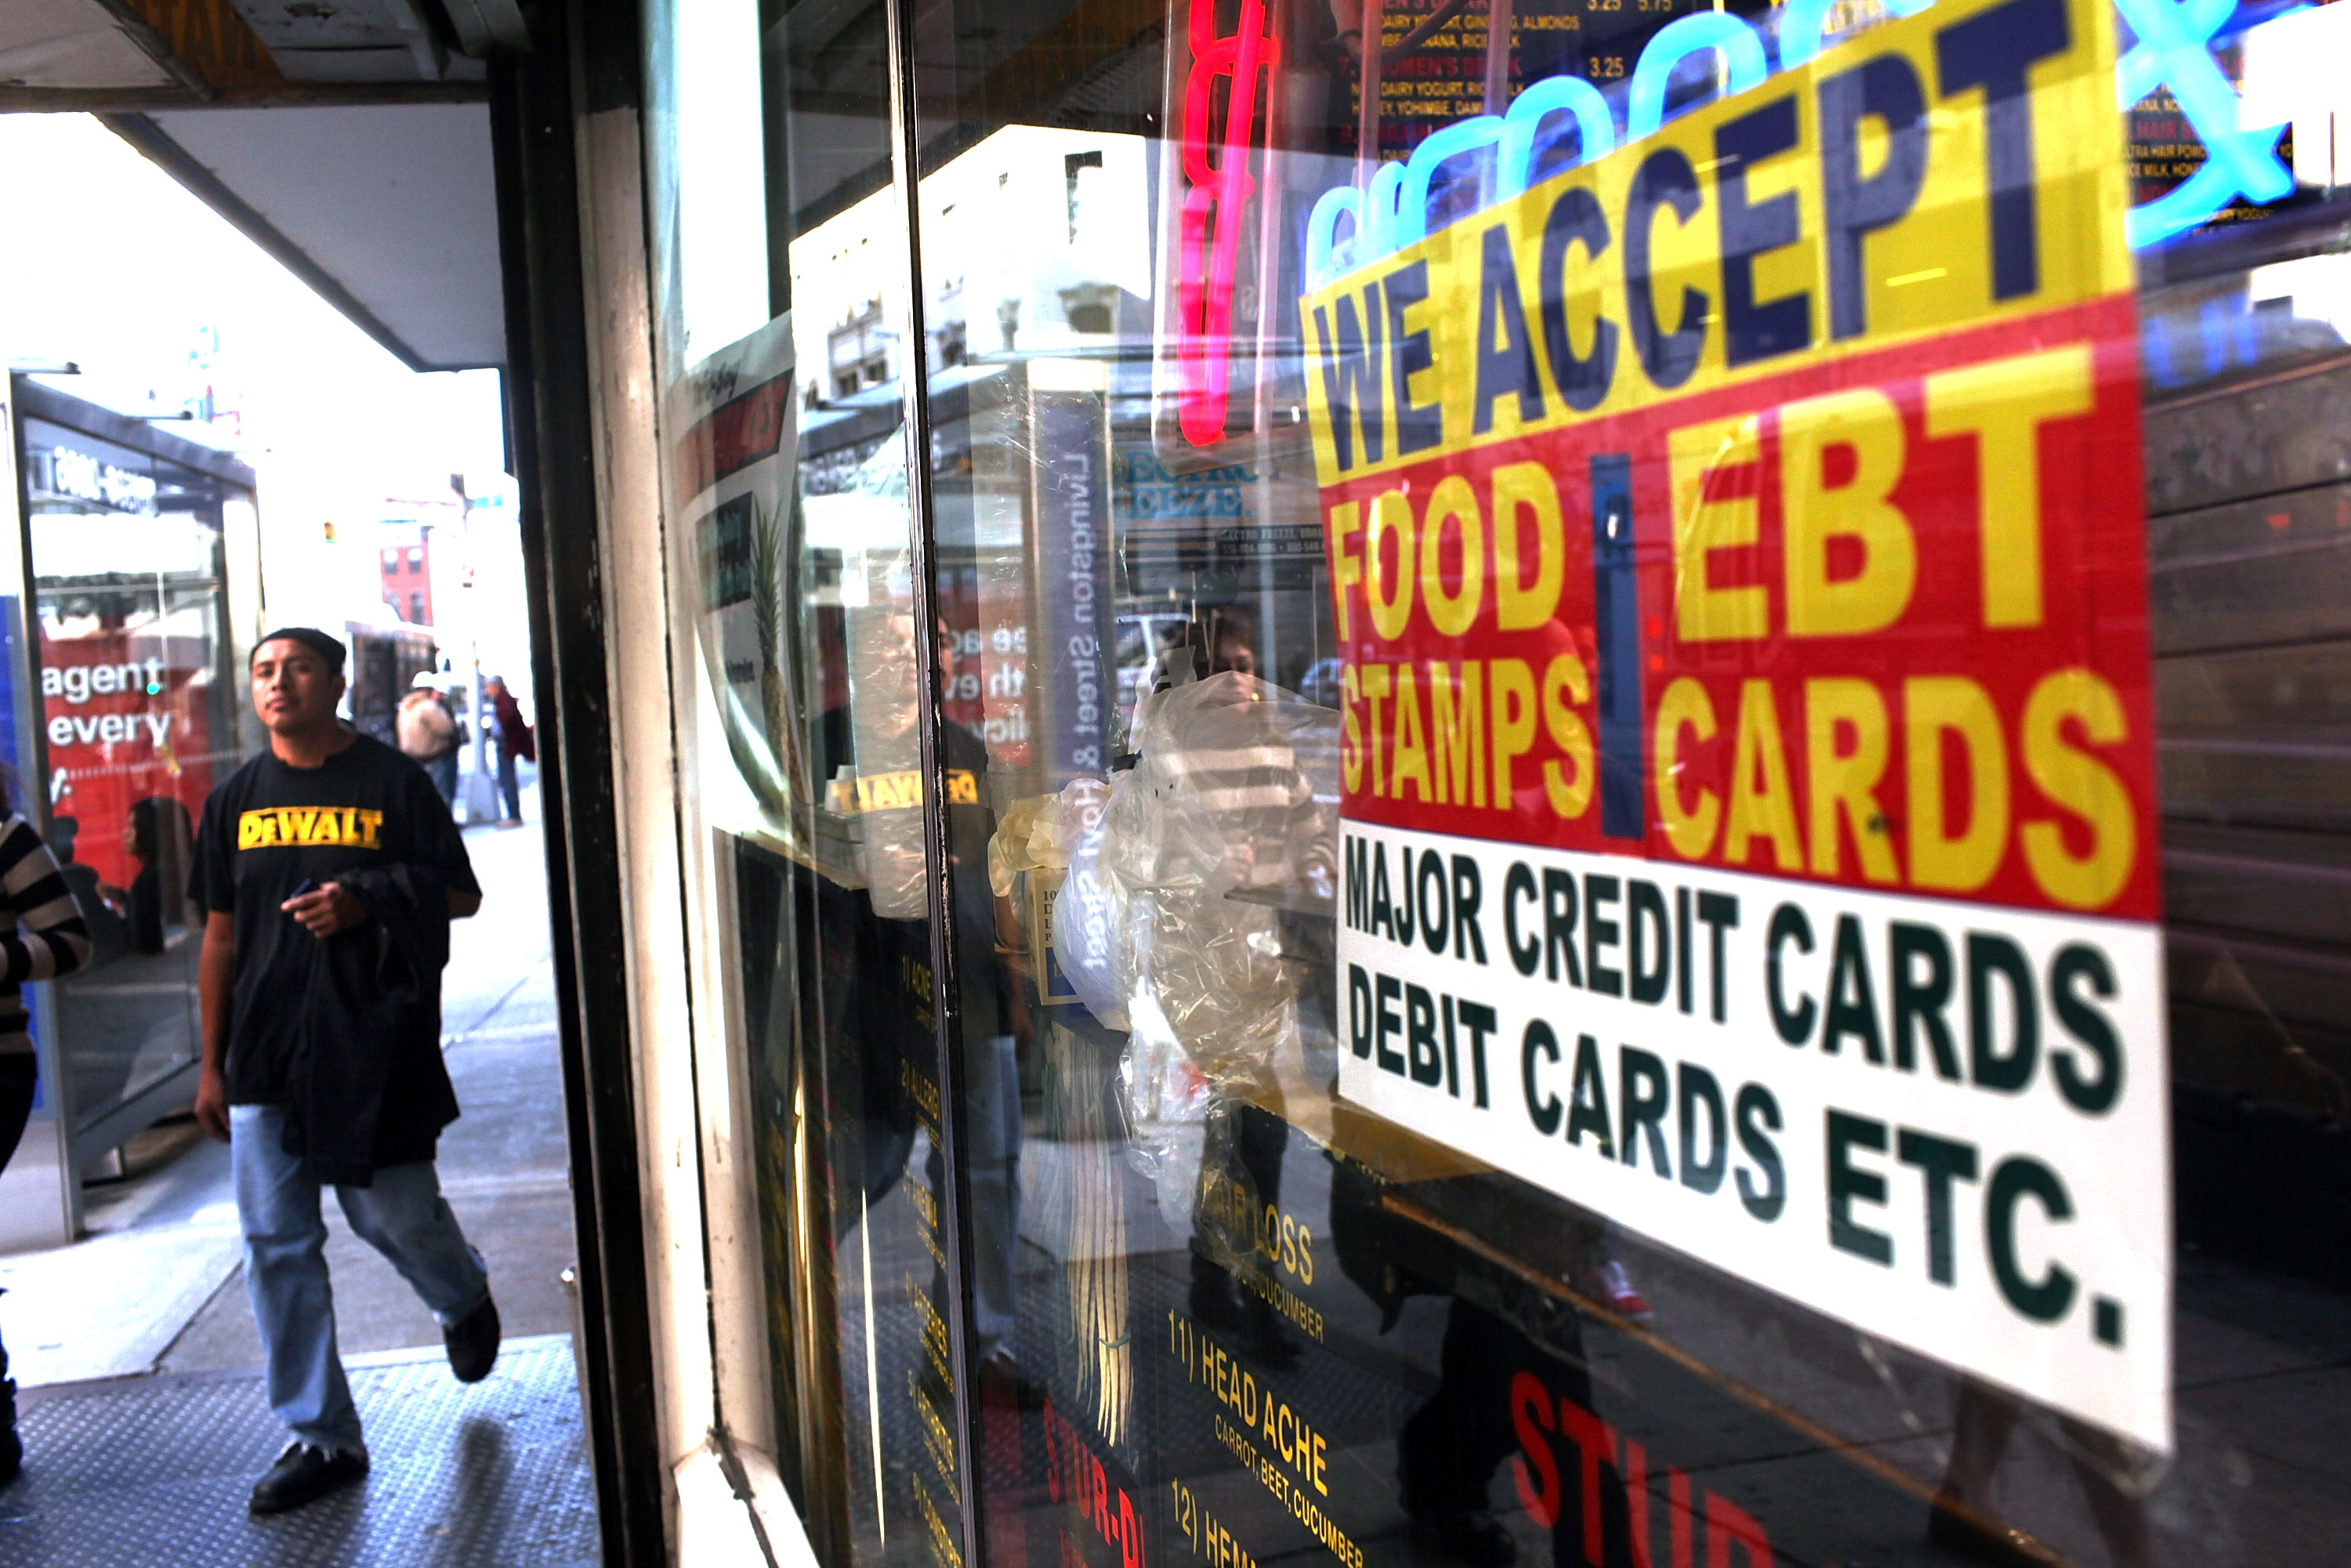 Bloomberg Asks Fed Gov't For Permission To Ban Food Stamp Purchases Of Sugary Drinks